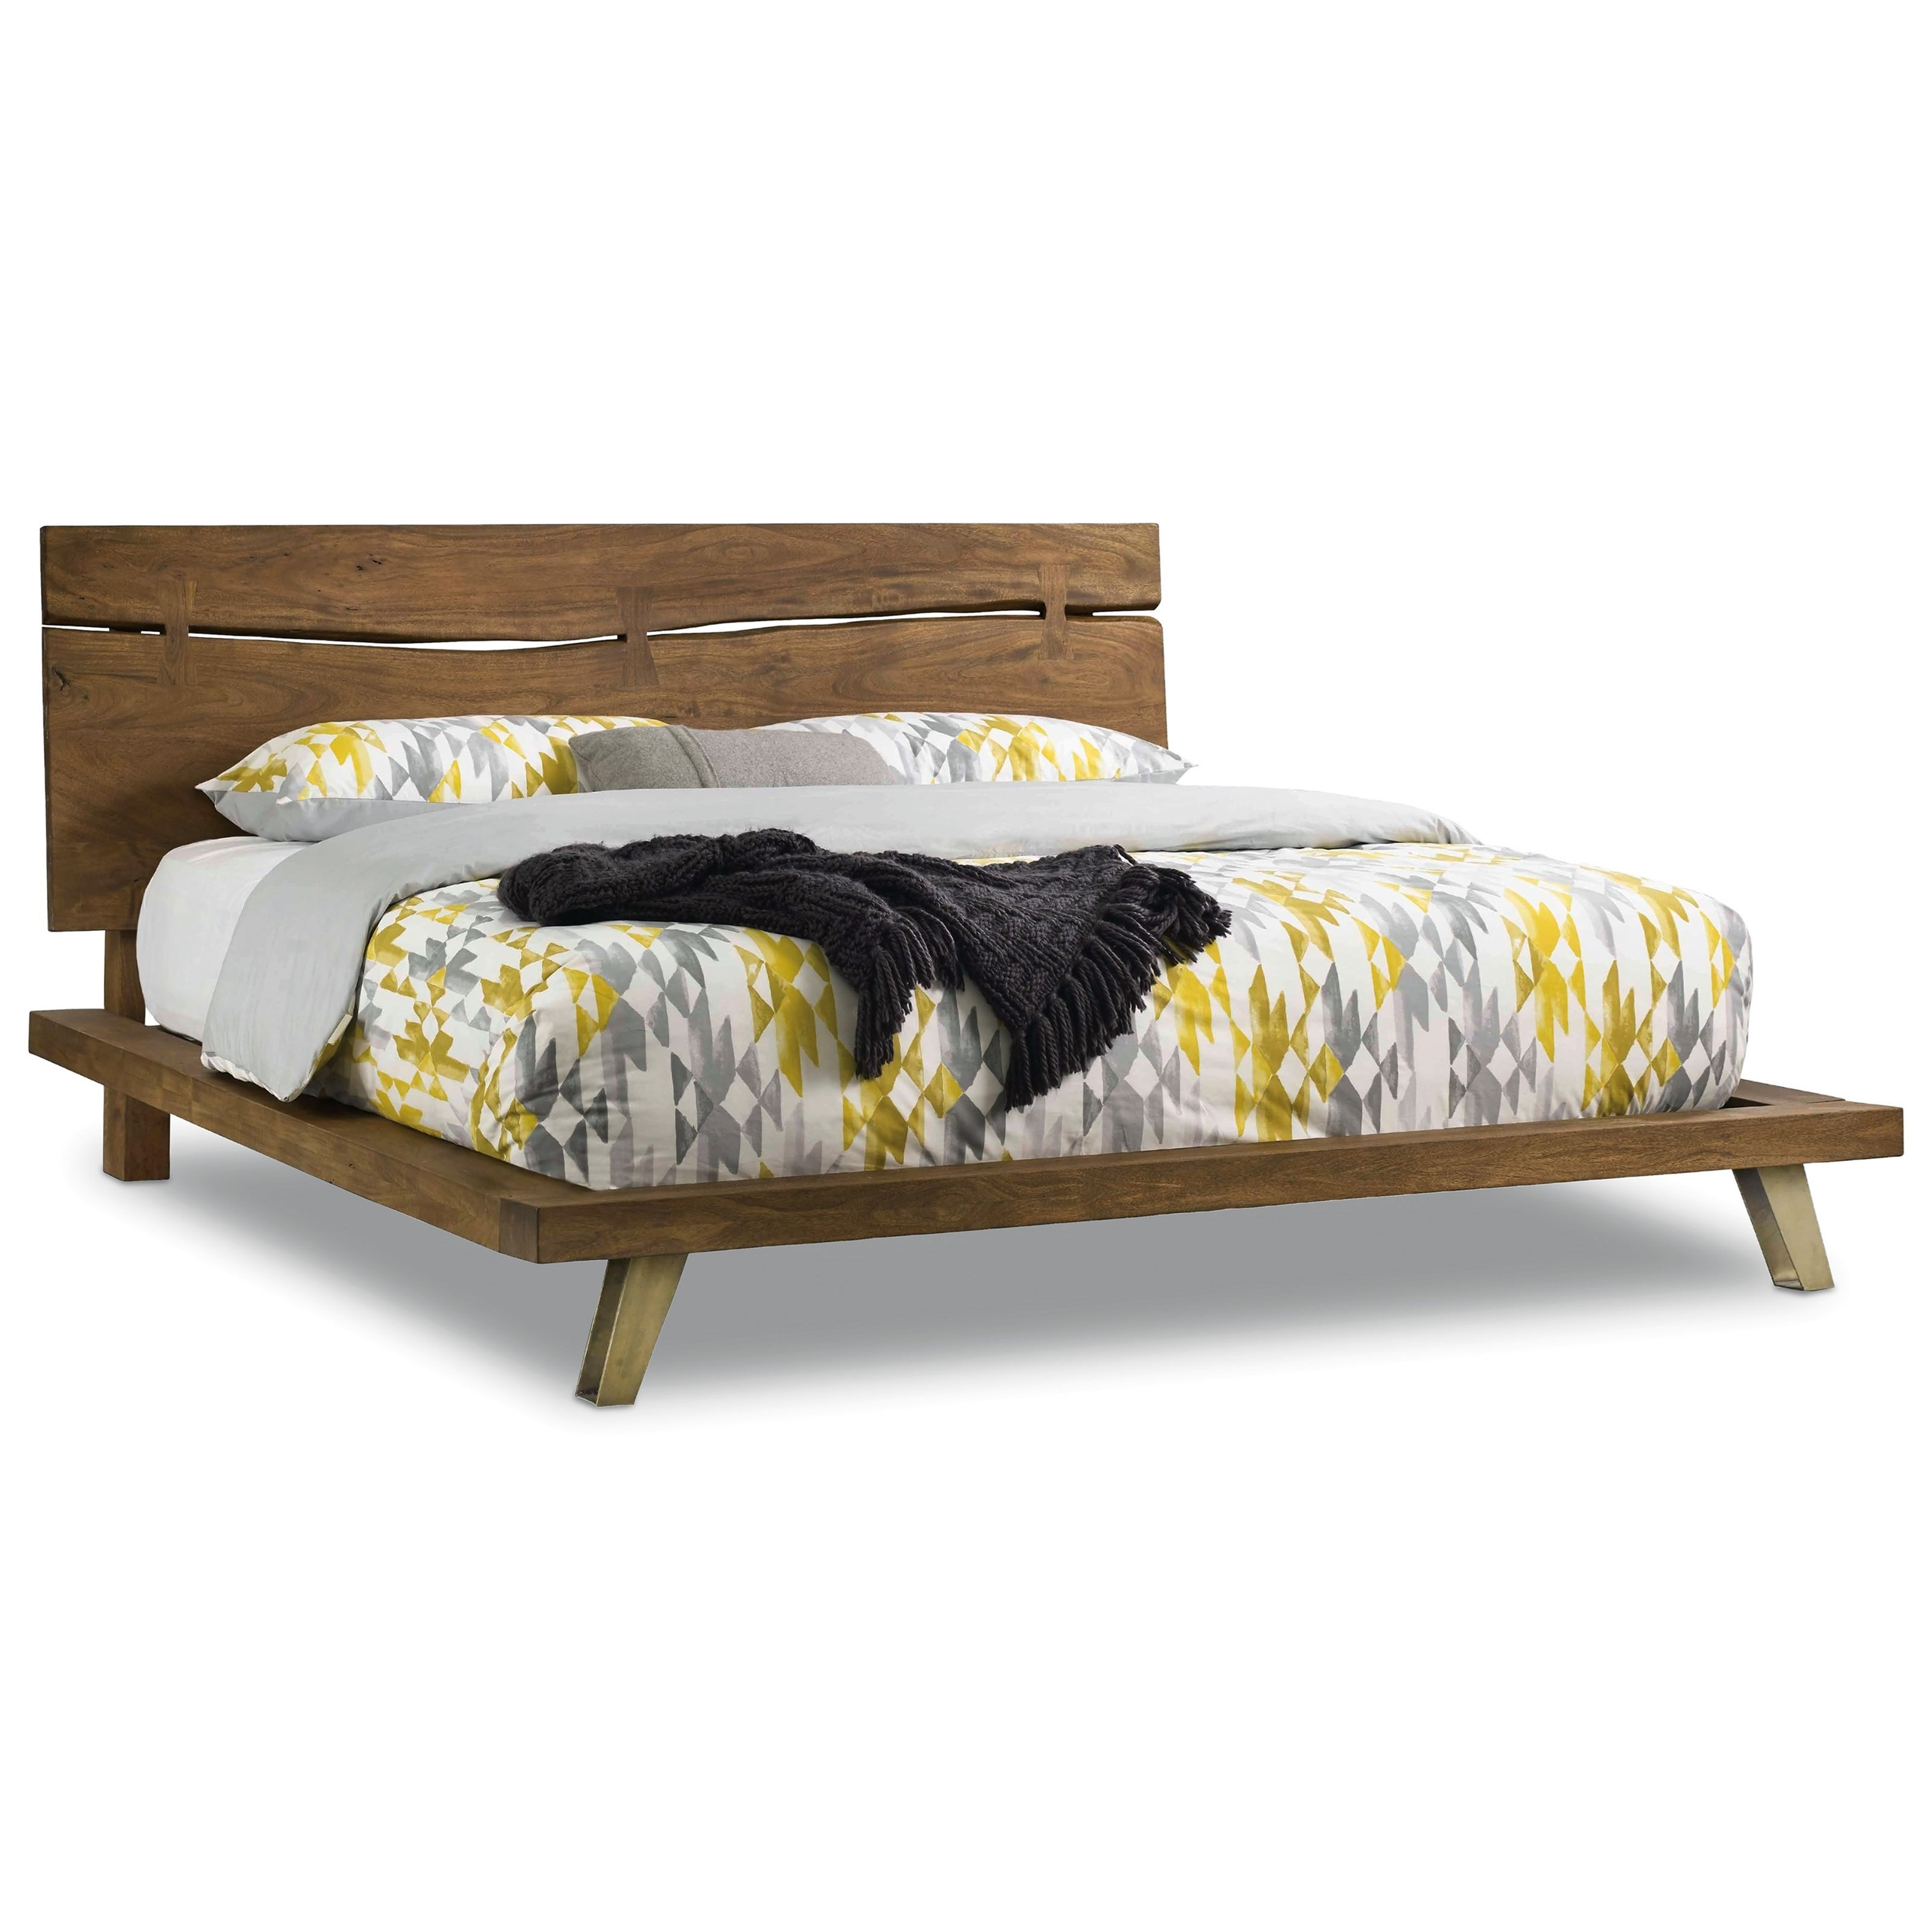 Hooker Furniture Transcend King Platform Bed - Item Number: 7000-90366